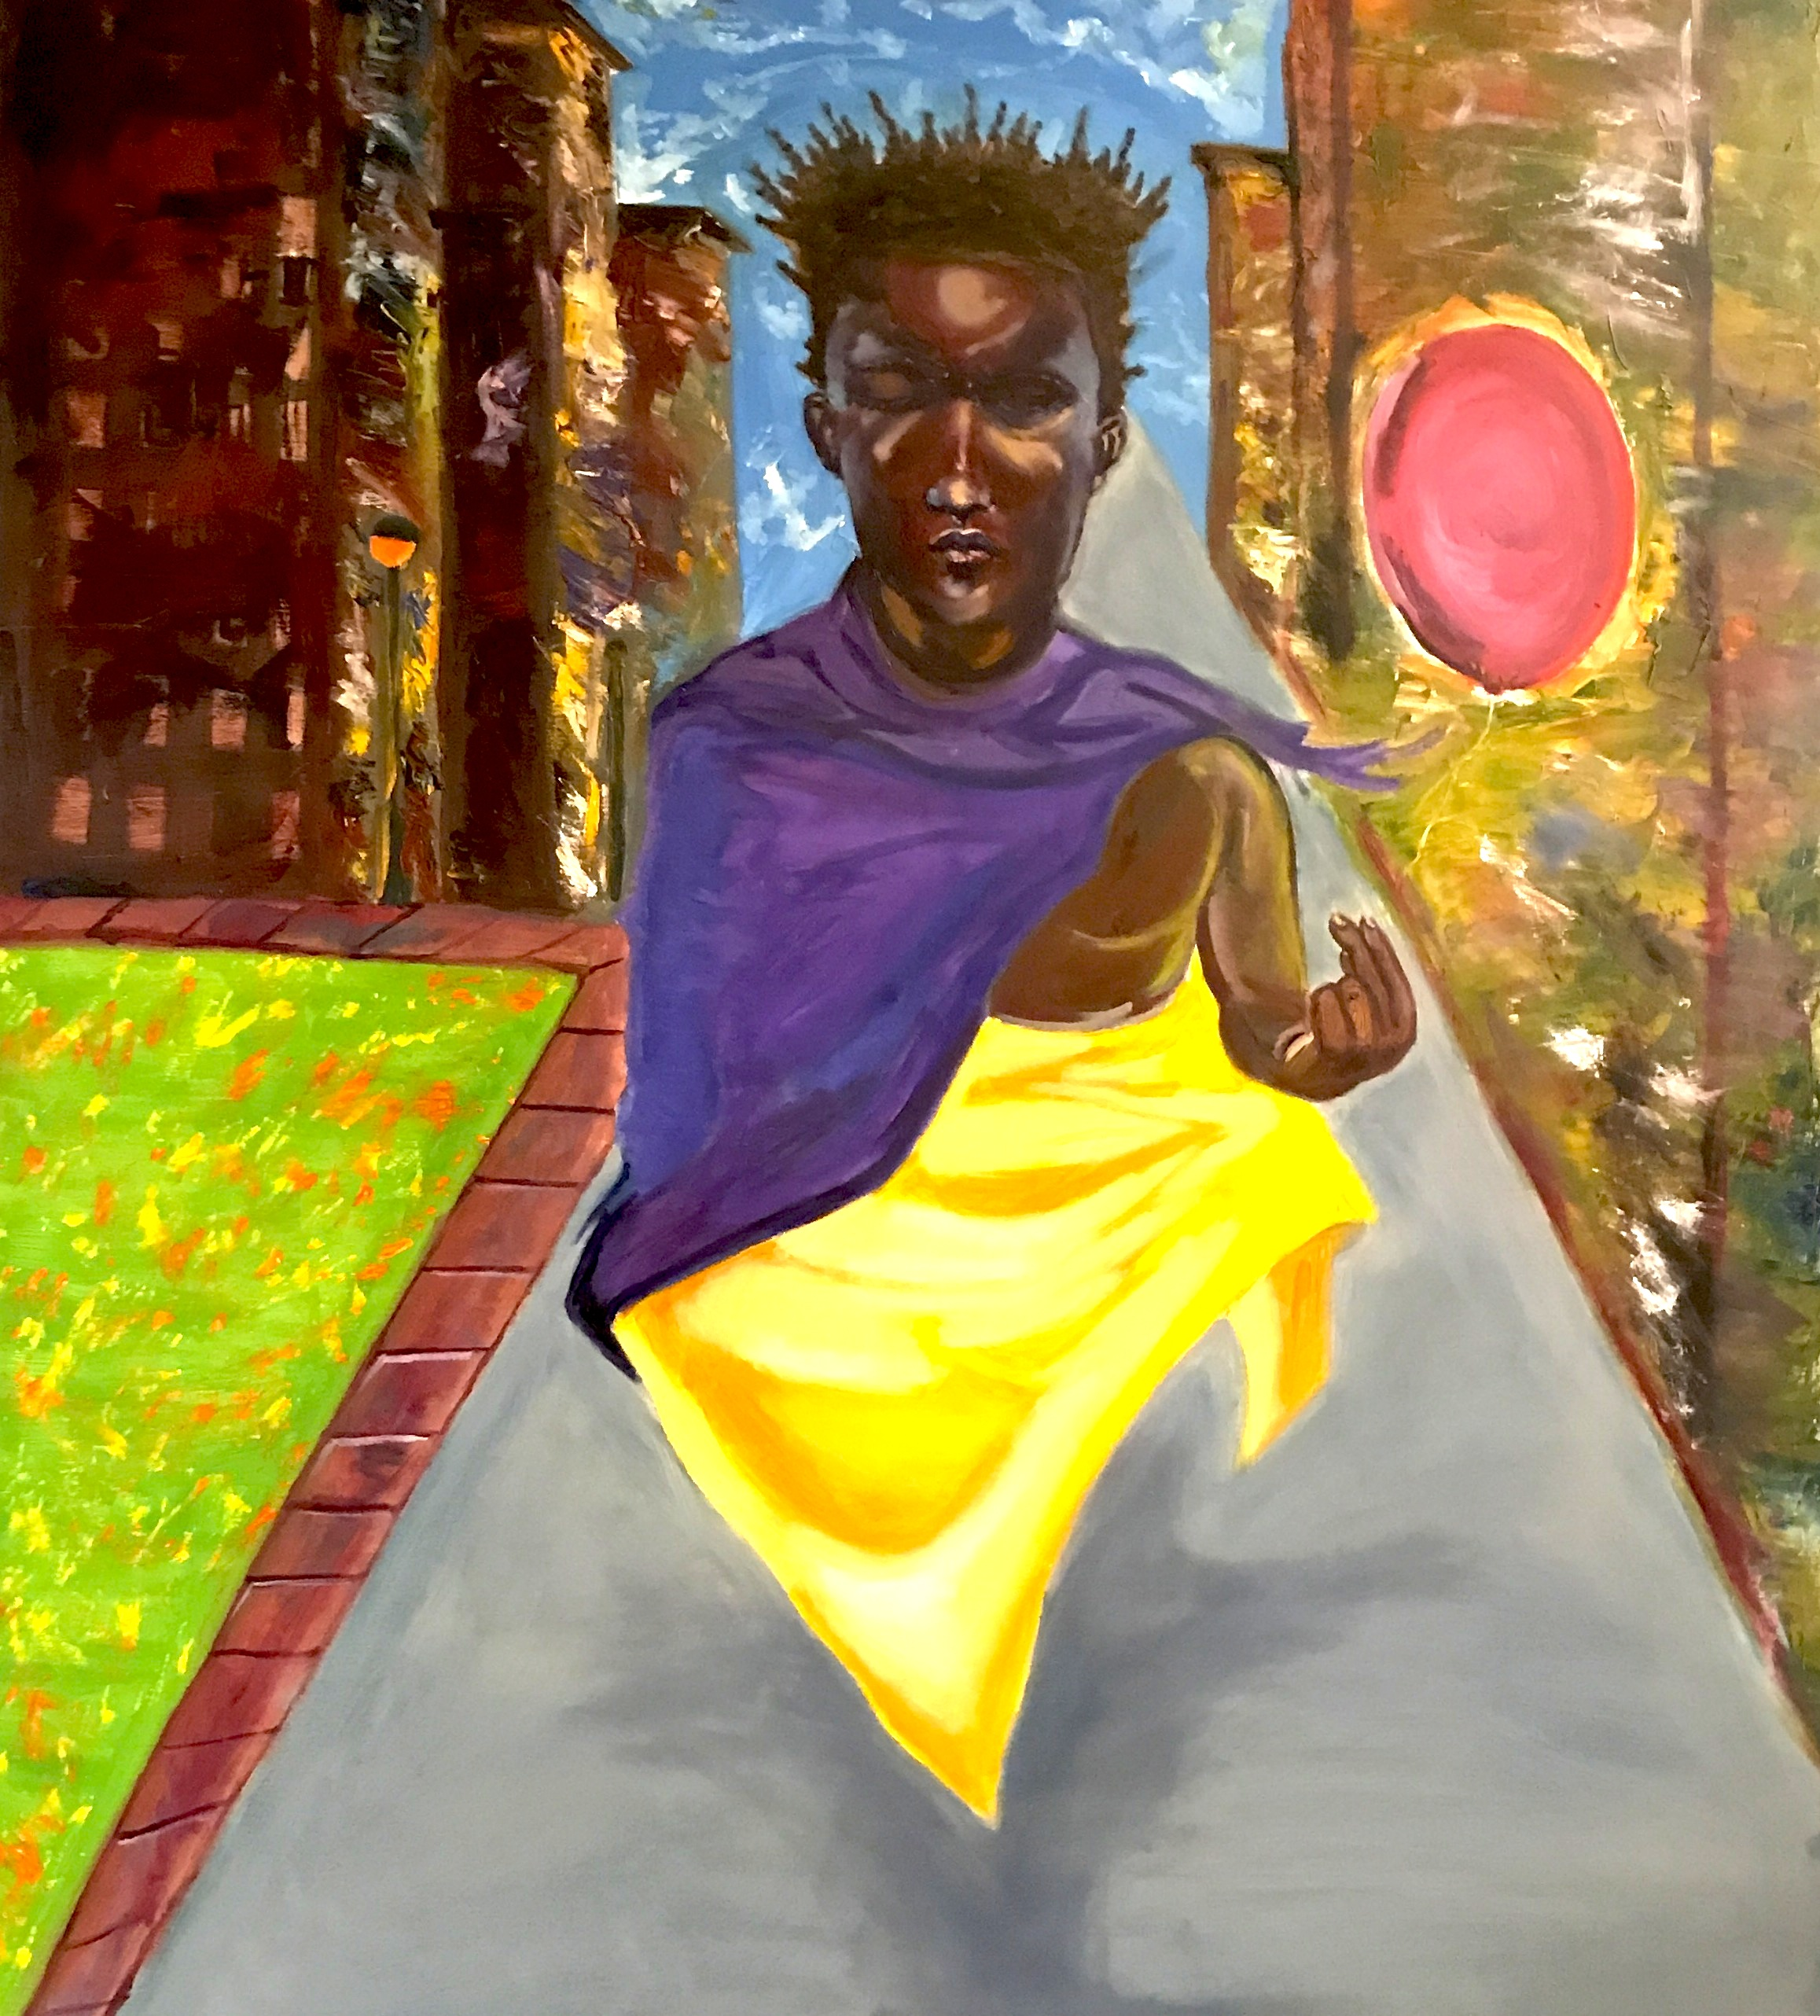 Miah Juantaine  is an African American artist that has been featured in different galleries and art shows. Born Jamiah Juantaine Calvin, he grew up on the west side of Chicago where he painted and drew a lot as a child to stay out of trouble in the neighborhood where he lived. His first job was an art apprentice at Gallery 37 at the age of 14. As he got older his love for art has become stronger. He now attends Northern Illinois University where he is working on his Bachelor of Fine Art. He is skilled in mediums such as charcoal, pastel and oil painting which happens to be his favorite. His style is a mixture expressionism and surrealism. Miah's goal is to capture deep emotion within the viewer of all his pieces by narrating an unwritten story through his art.